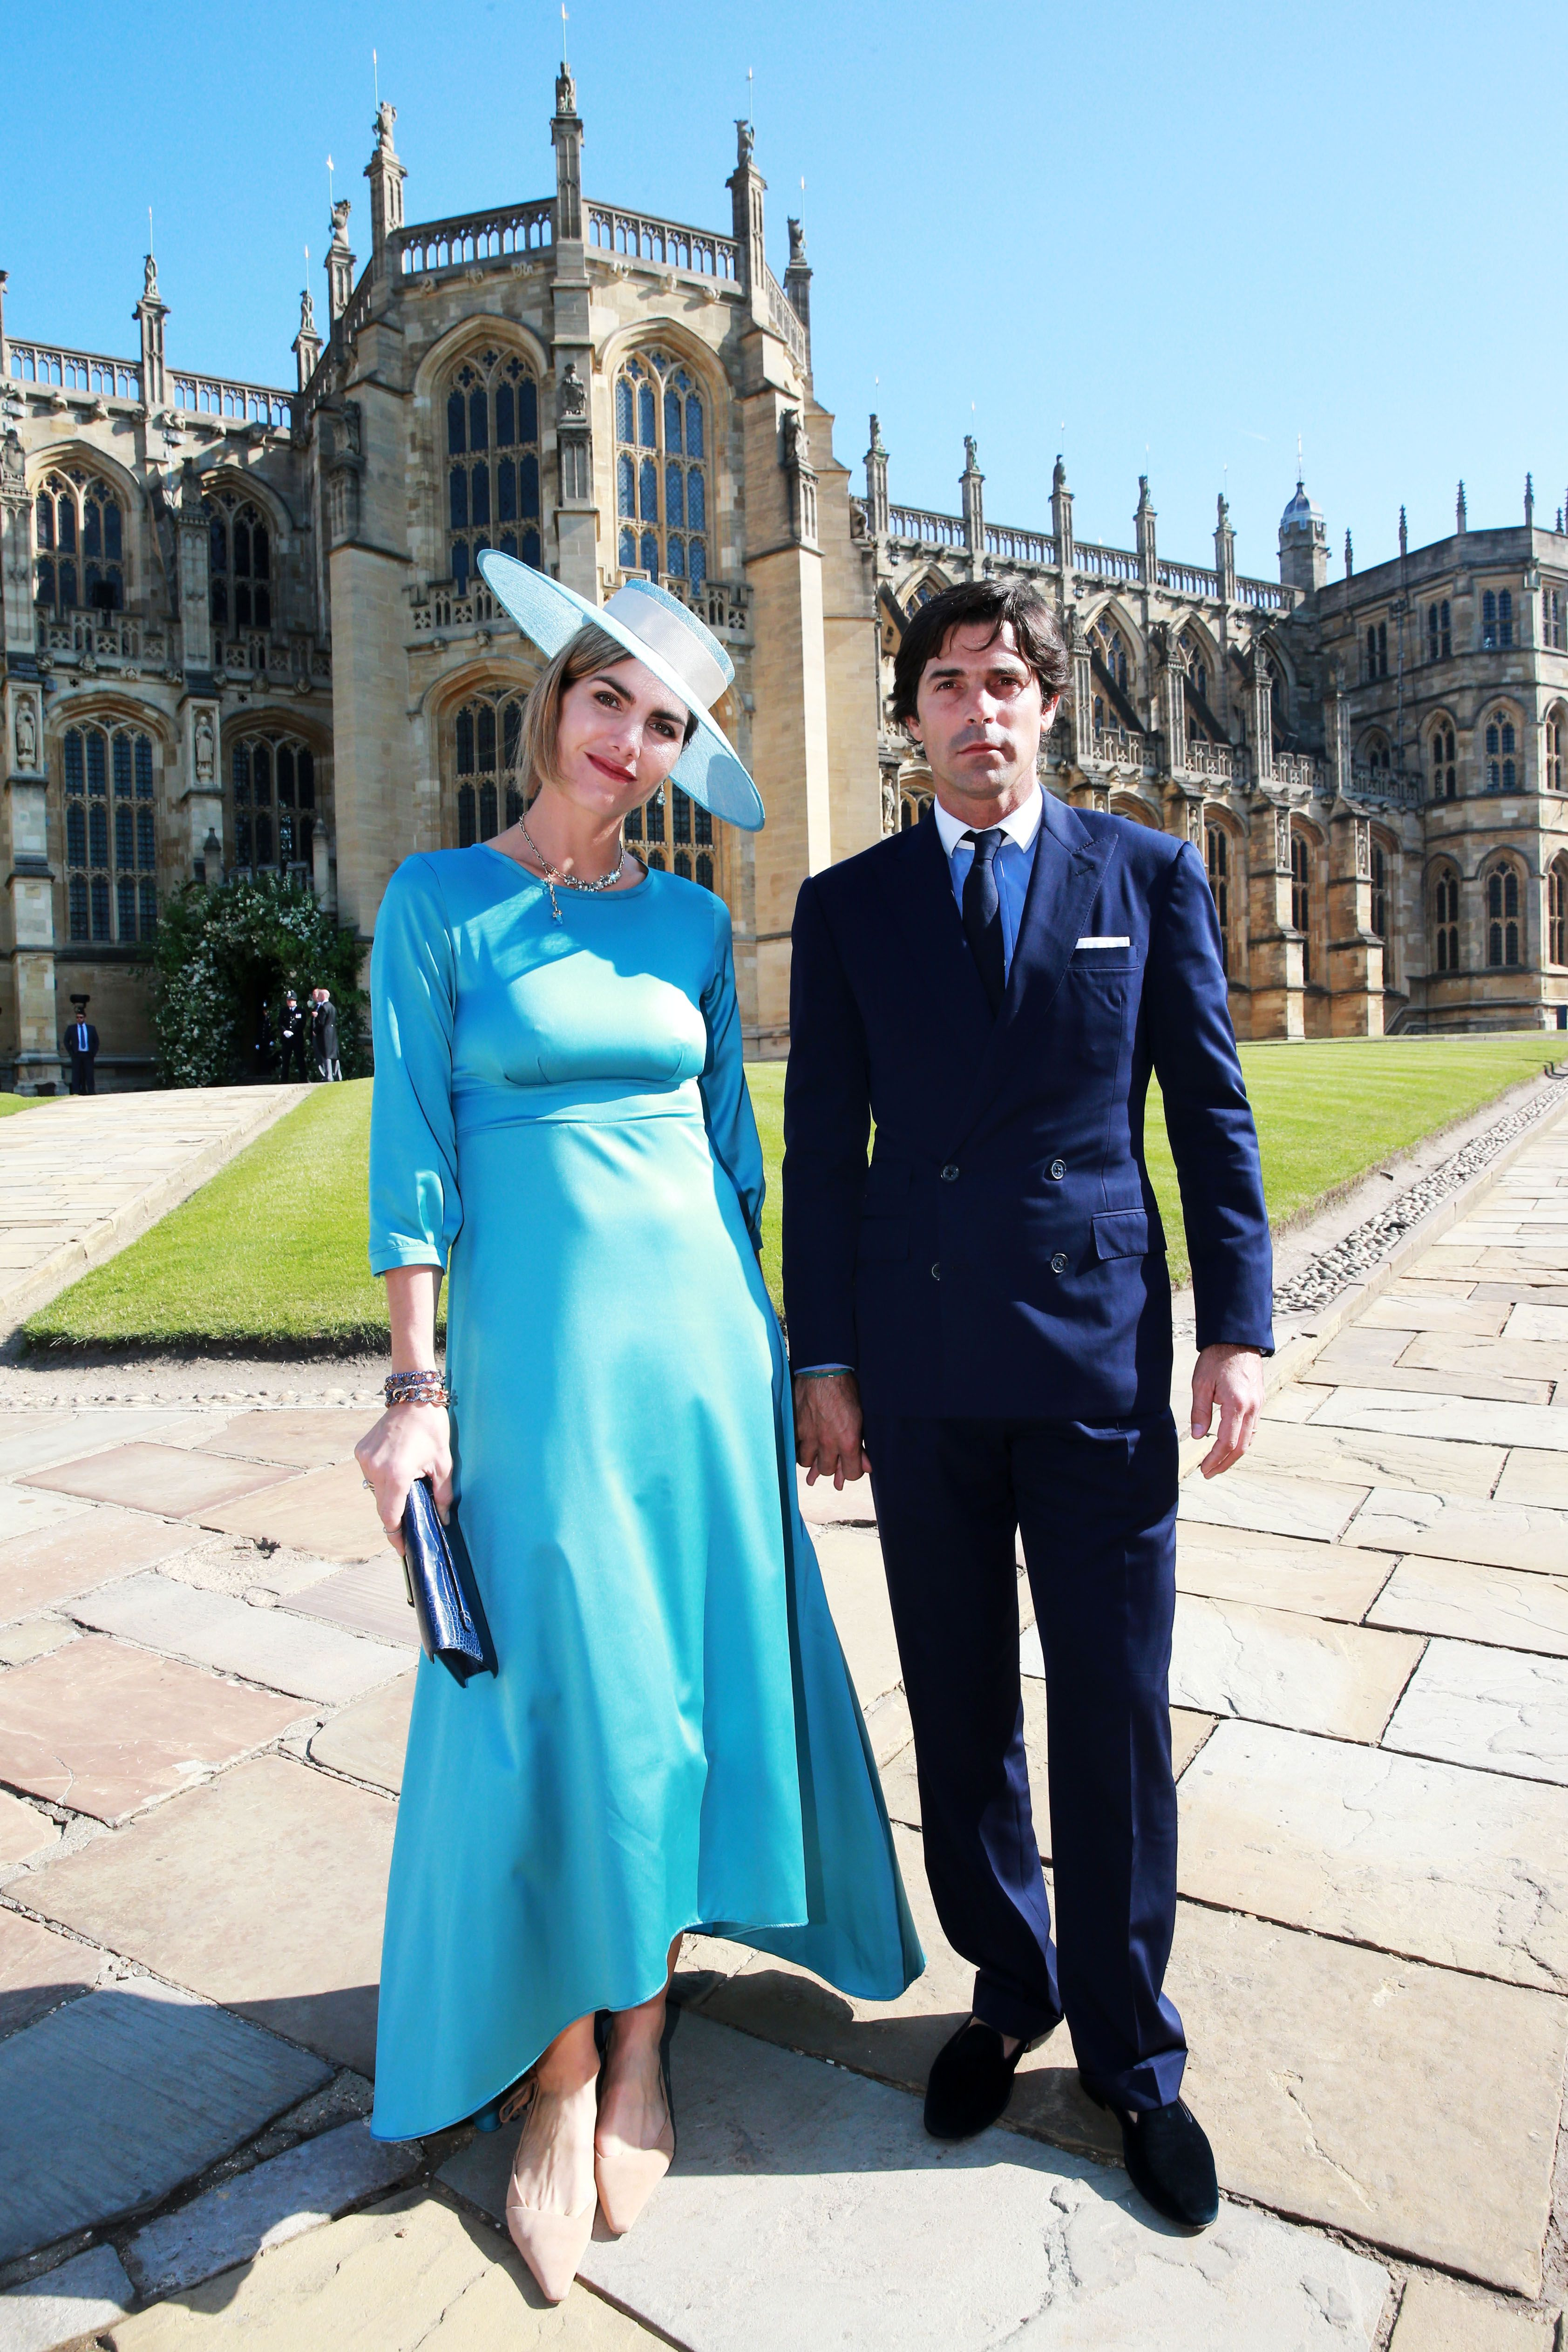 Figueras and Prince Harry are longtime friends—they met playing polo together. Blaquier is wearing a light blue Acheval Pampa dress with a matching hat.